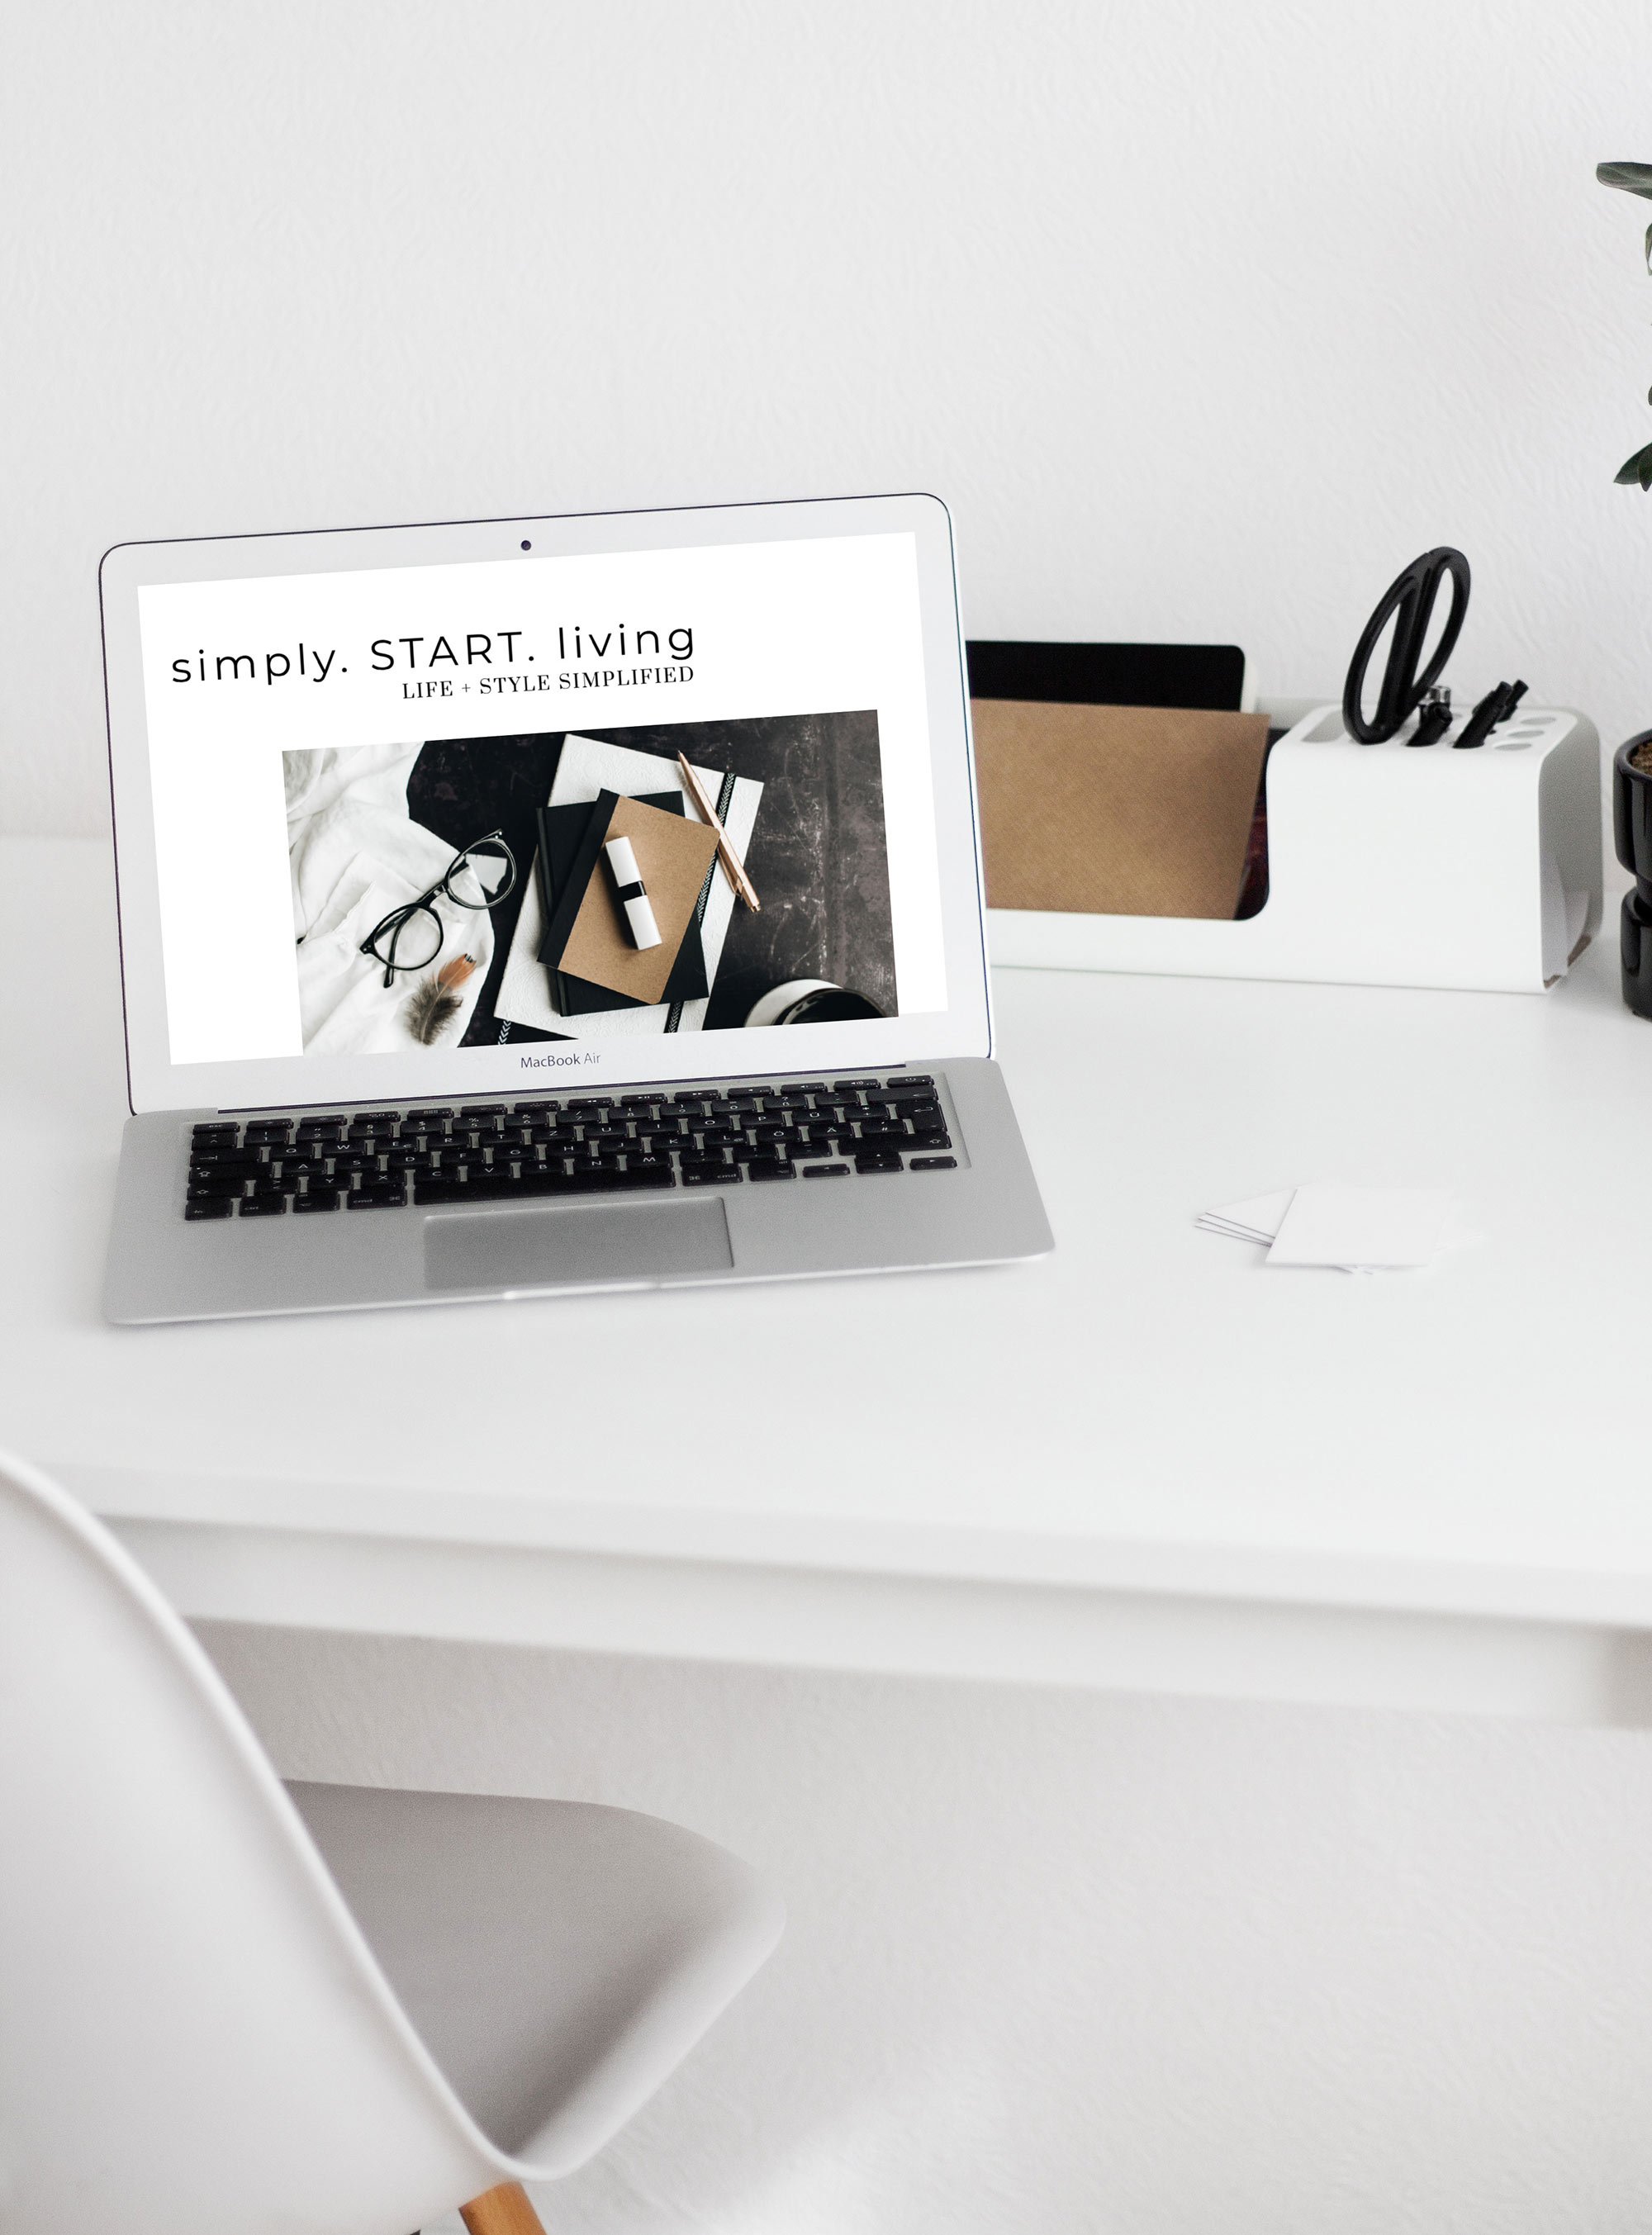 3-simply-start-living-on-laptop-on-minimal-white-desk.jpg